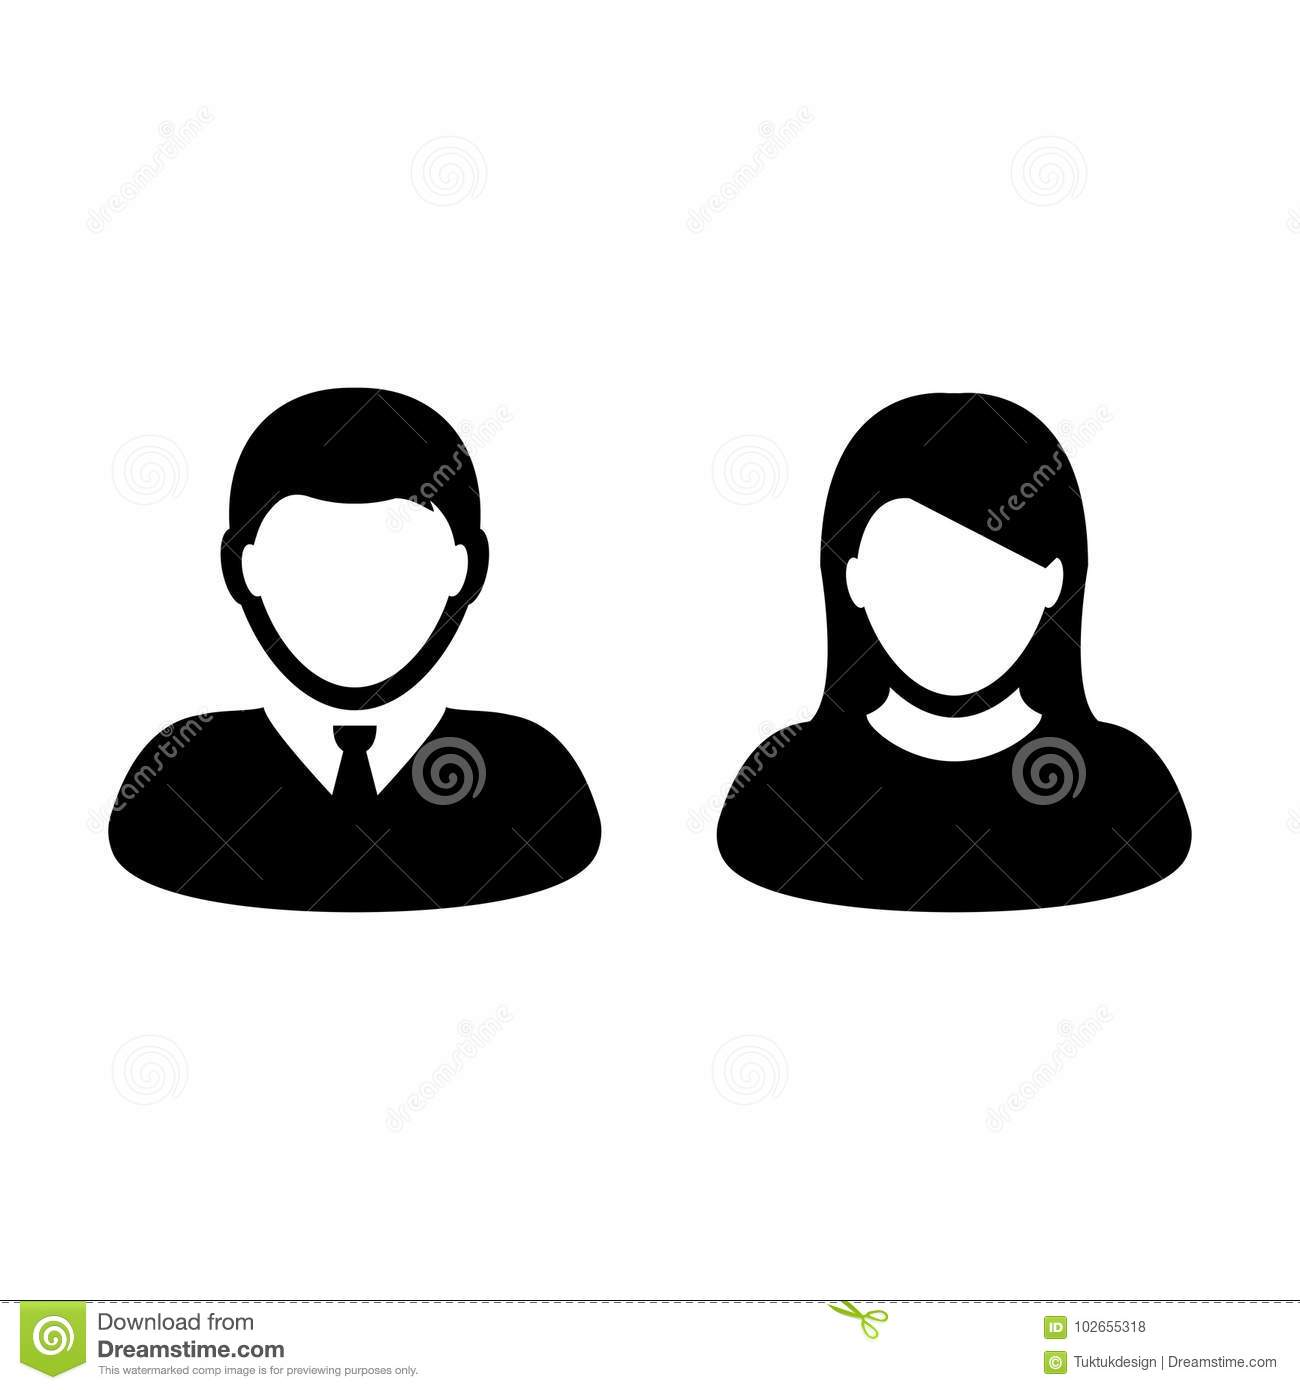 People Icon Vector Male and Female Person Profile Avatar